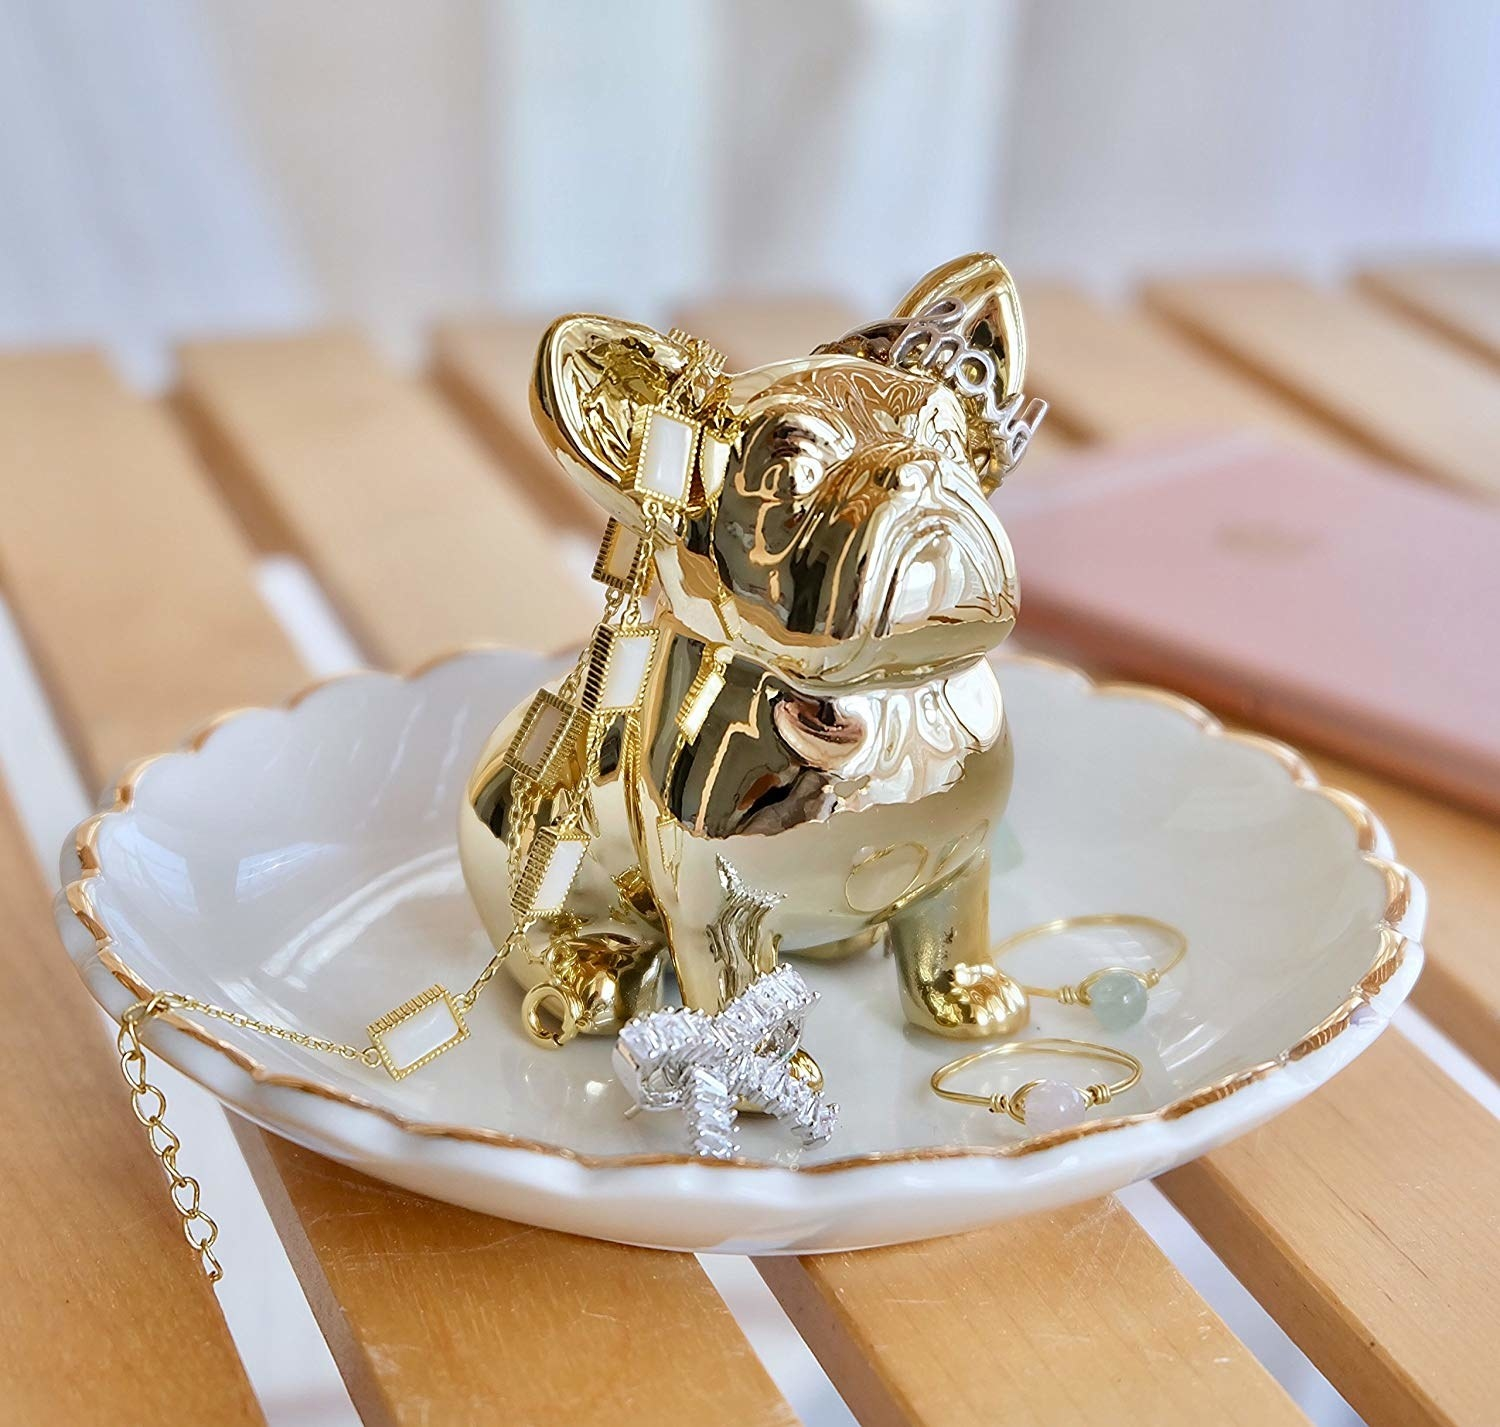 A white dish with a scalloped edge and a gold bulldog in the center with assorted rings and bracelets over it.